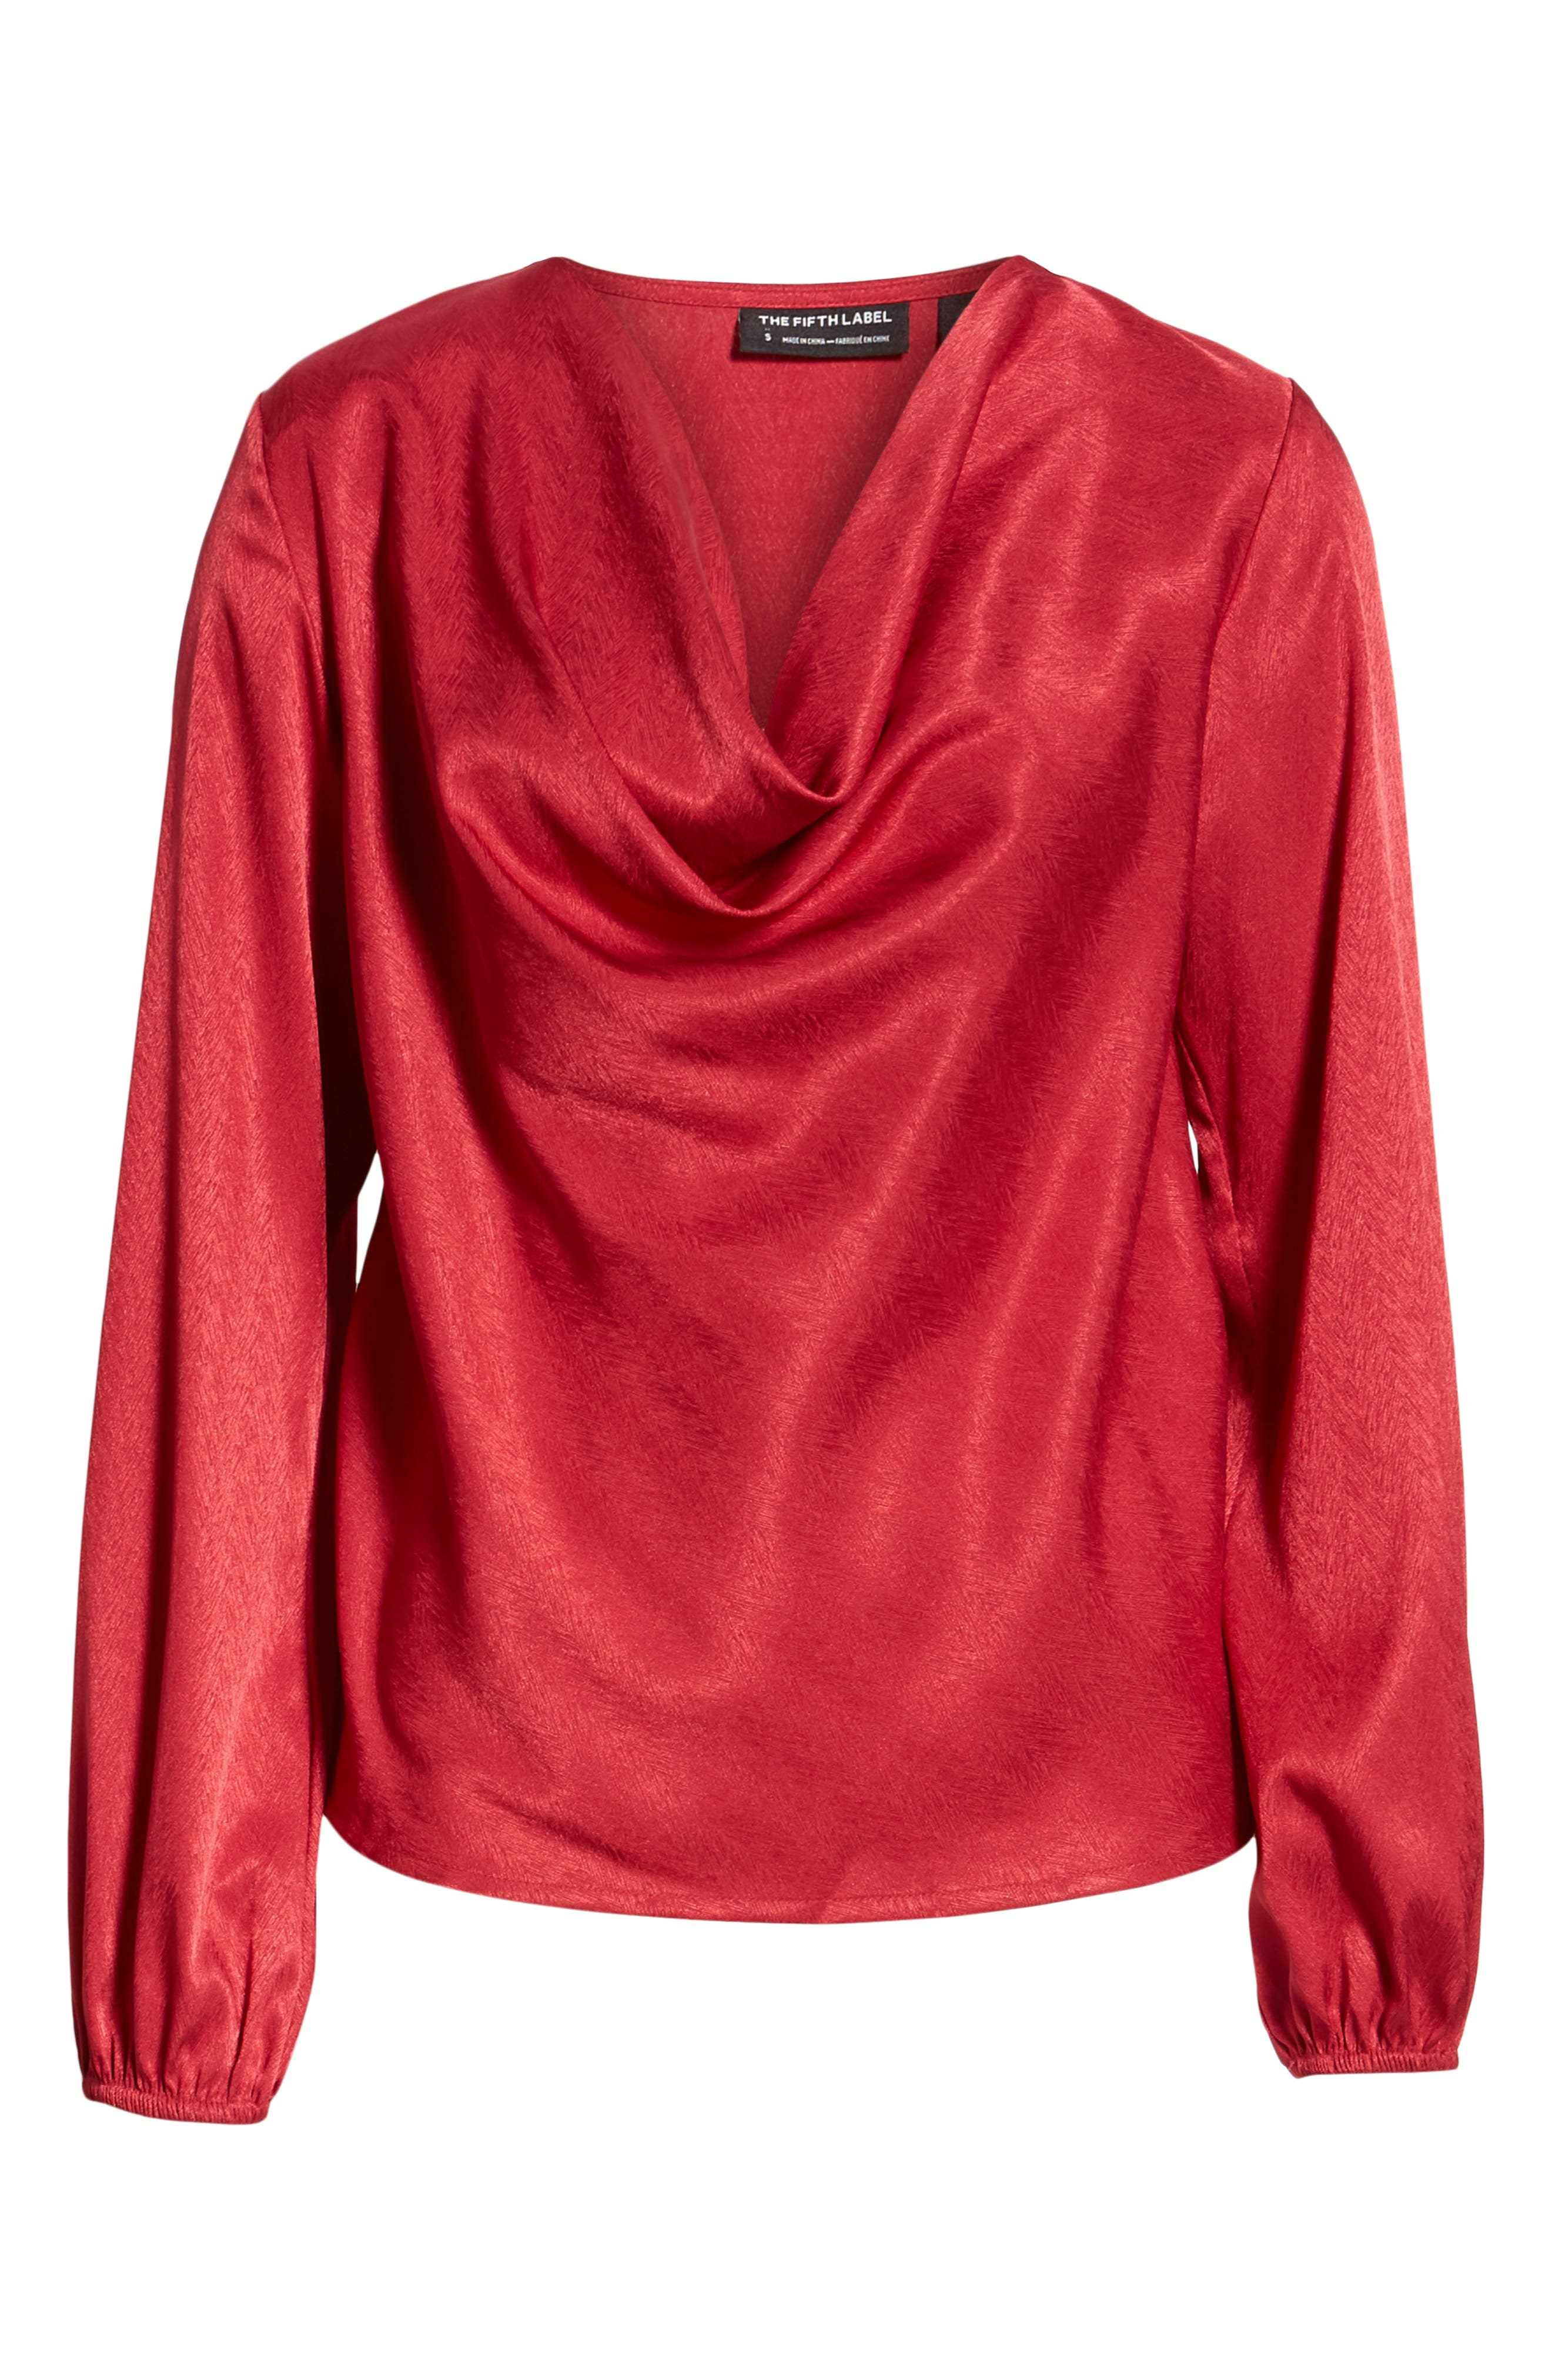 THE FIFTH LABEL, Lotti Cowl Neck Top, Alternate thumbnail 6, color, 600